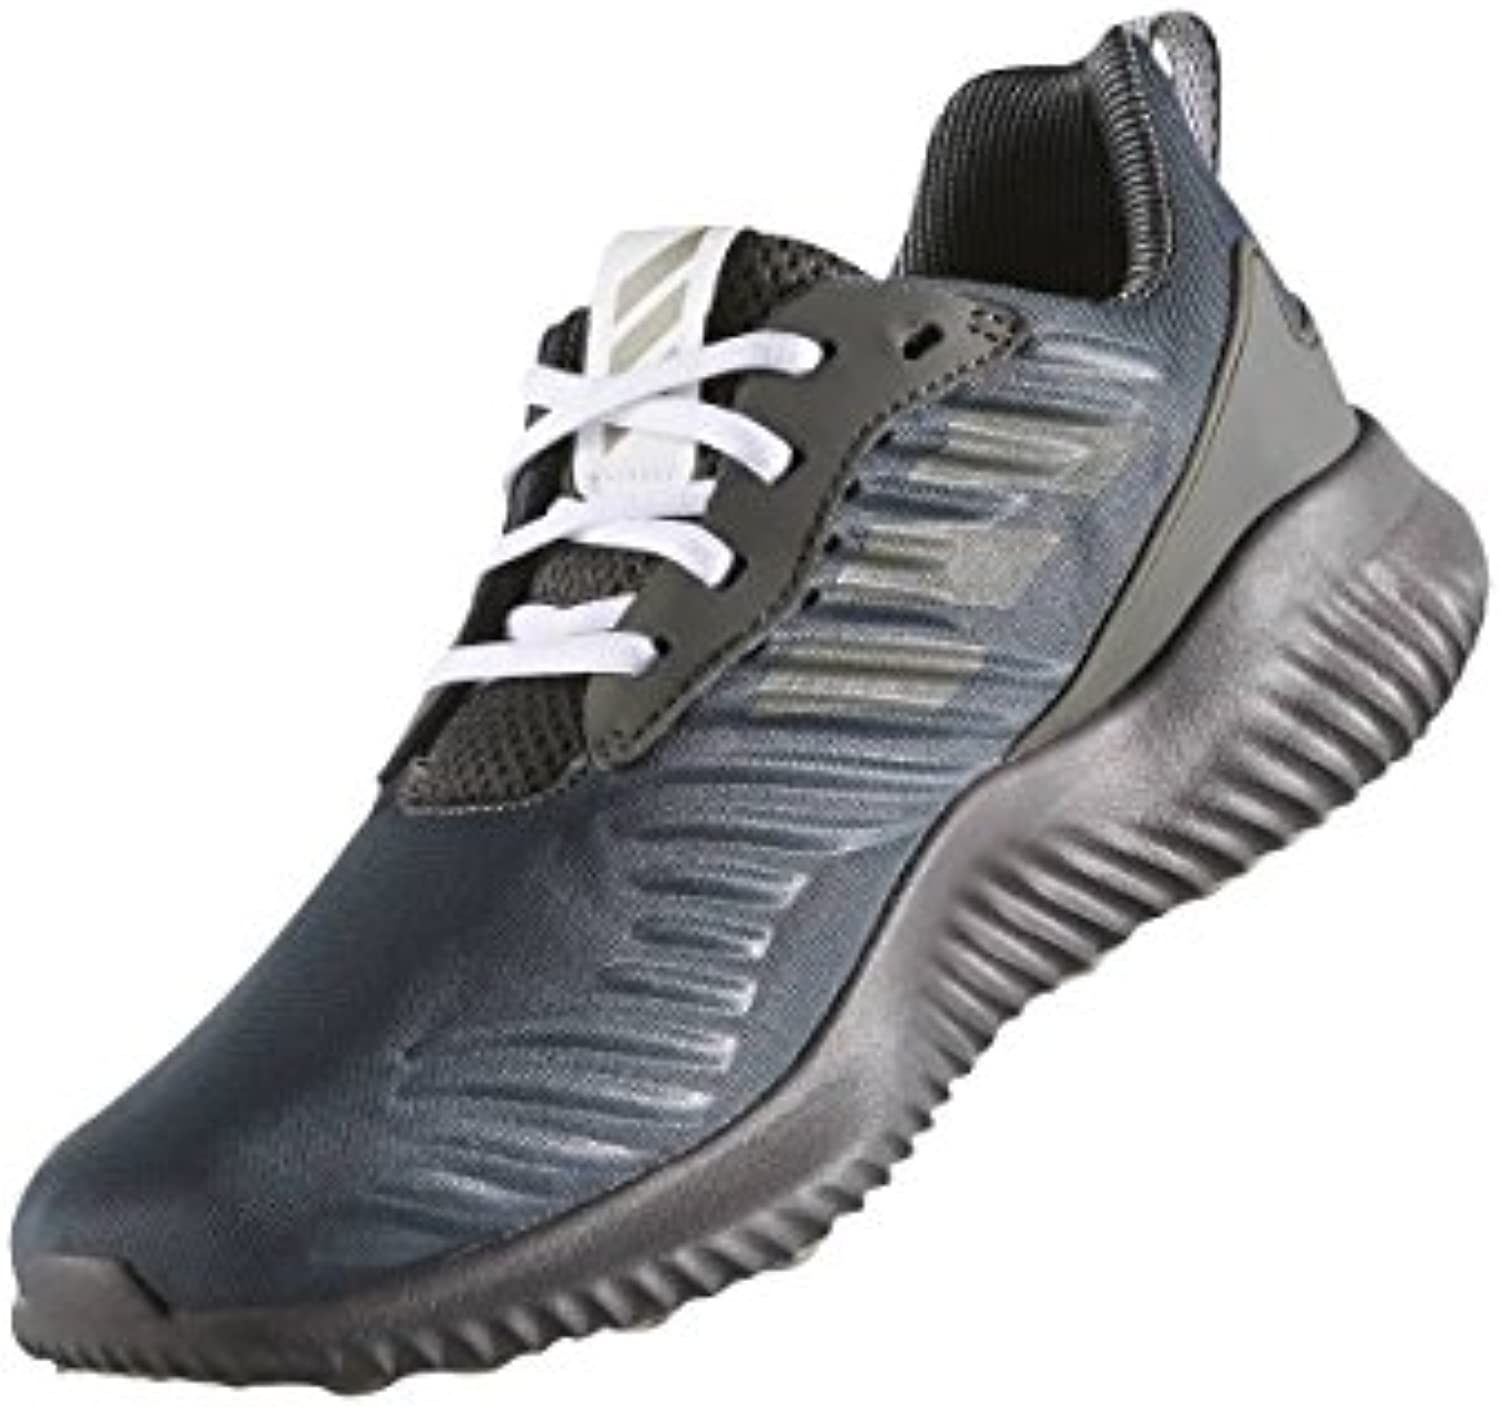 Adidas alphabounce RC m - Men's Athletic Shoes, (hieuti gray - (hieuti Shoes, / cartra / griuti) 46 69e4ee